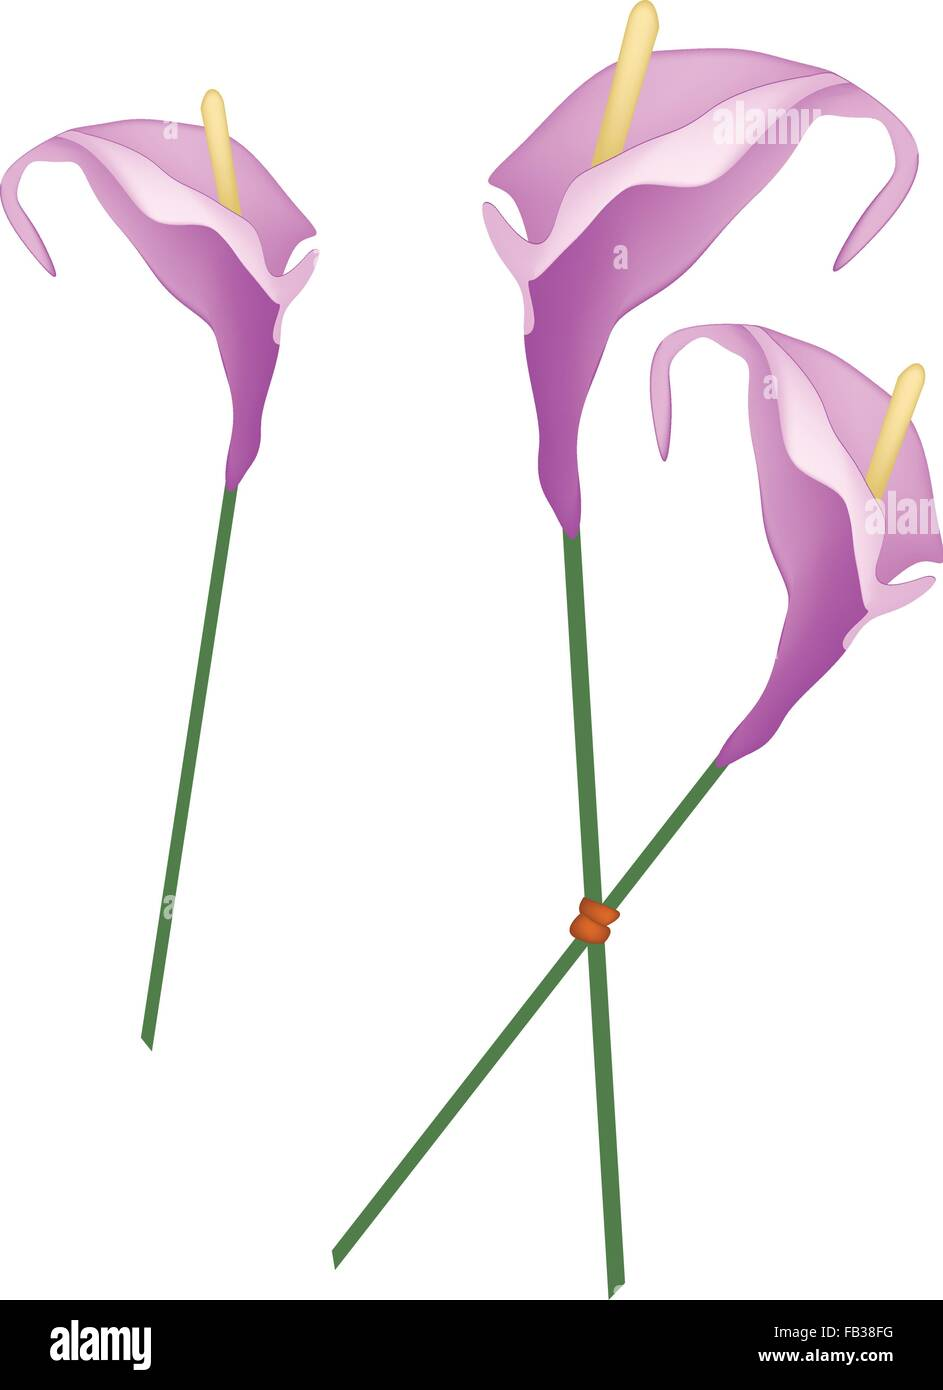 Beautiful Flower, Illustration of Purple Anthurium Flowers or Flamingo Flowers with Green Leaves Isolated on White - Stock Vector